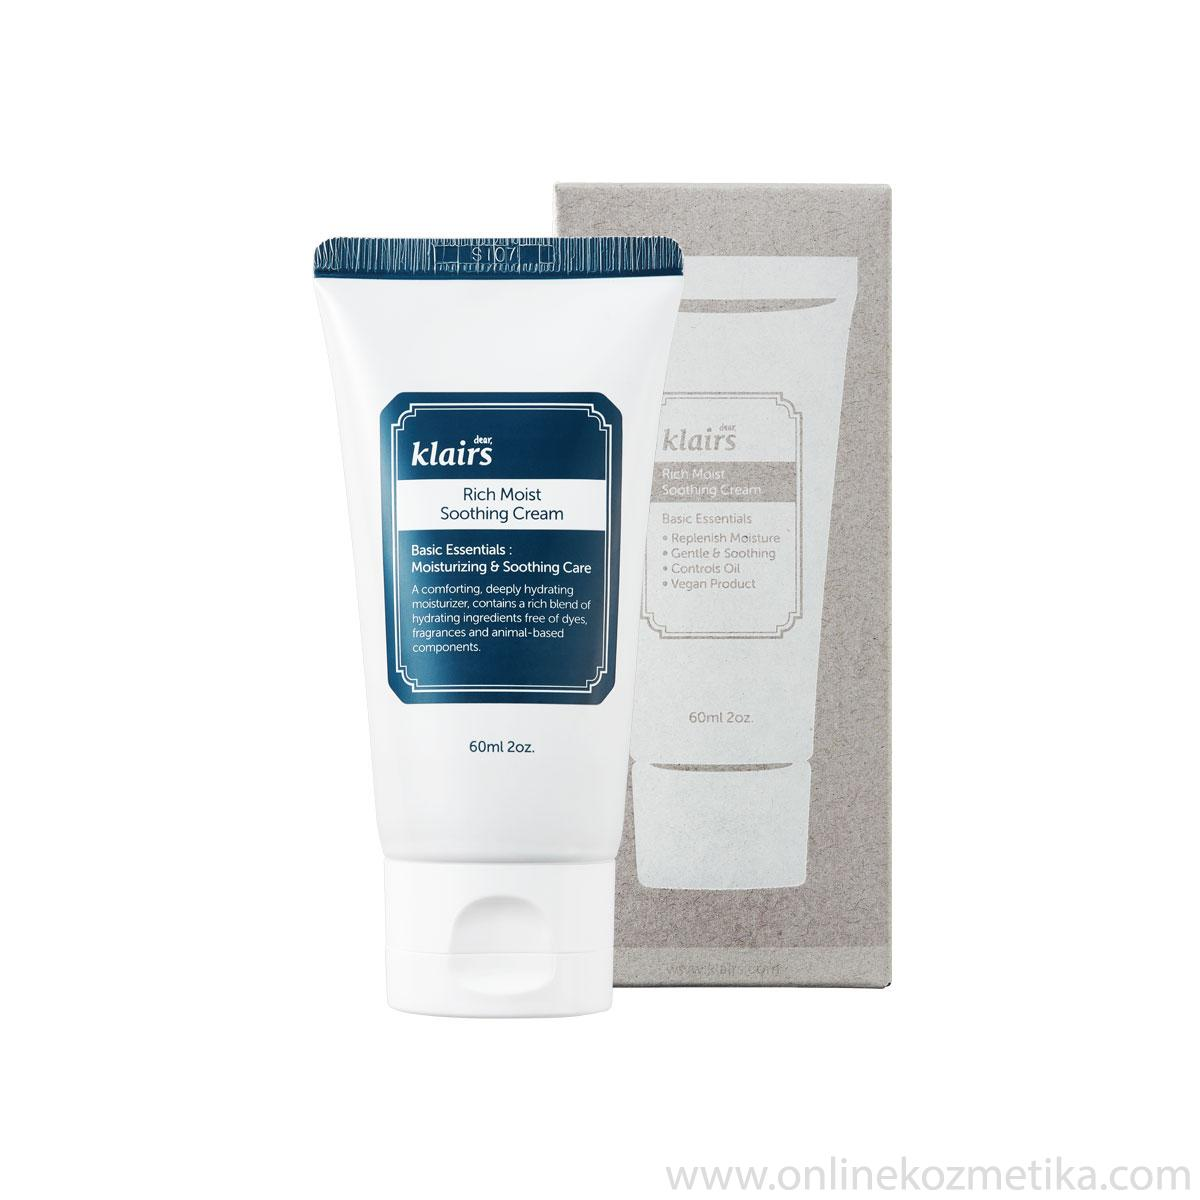 KLAIRS Rich Moist Sooting Cream 60ml